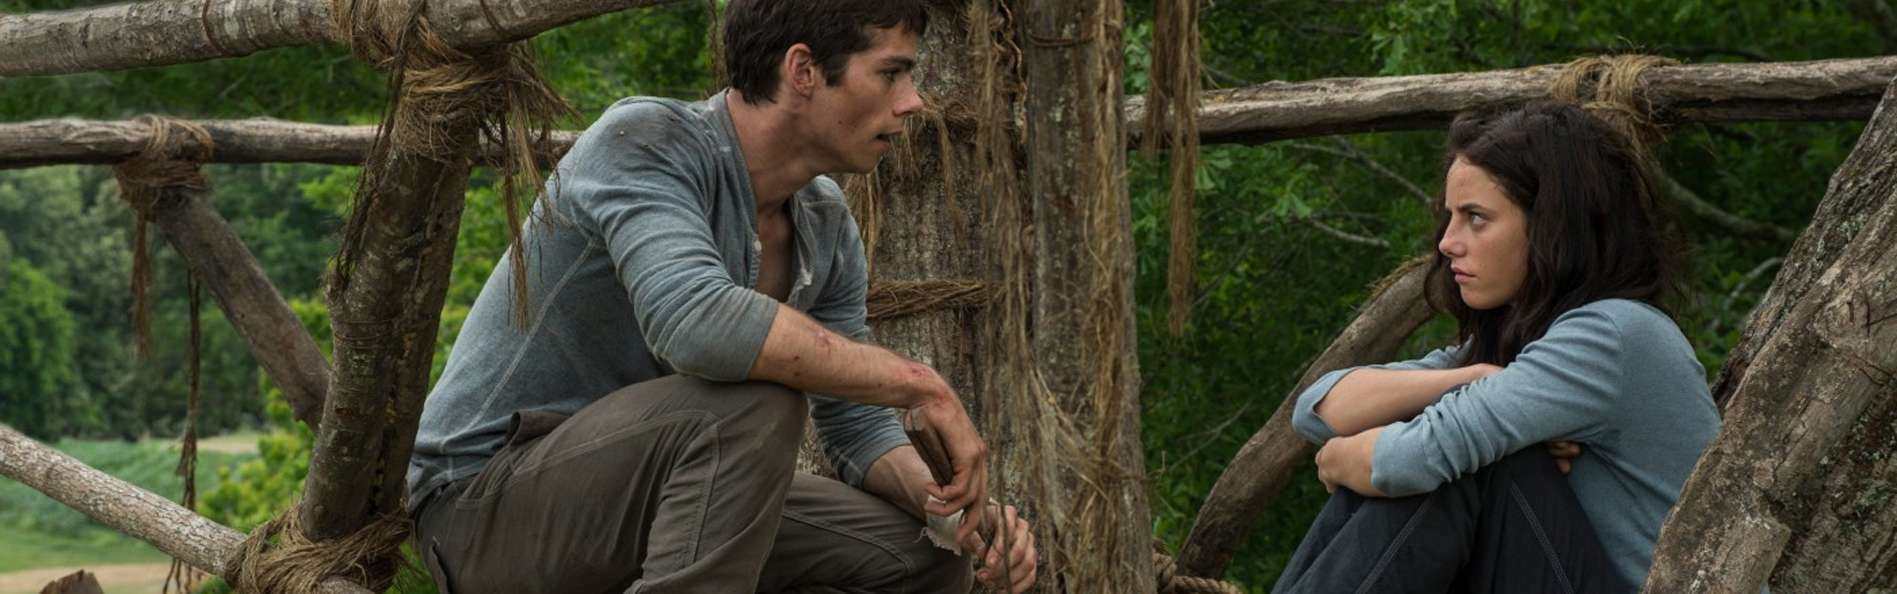 'The Maze Runner'. Foto: 20th Century Fox